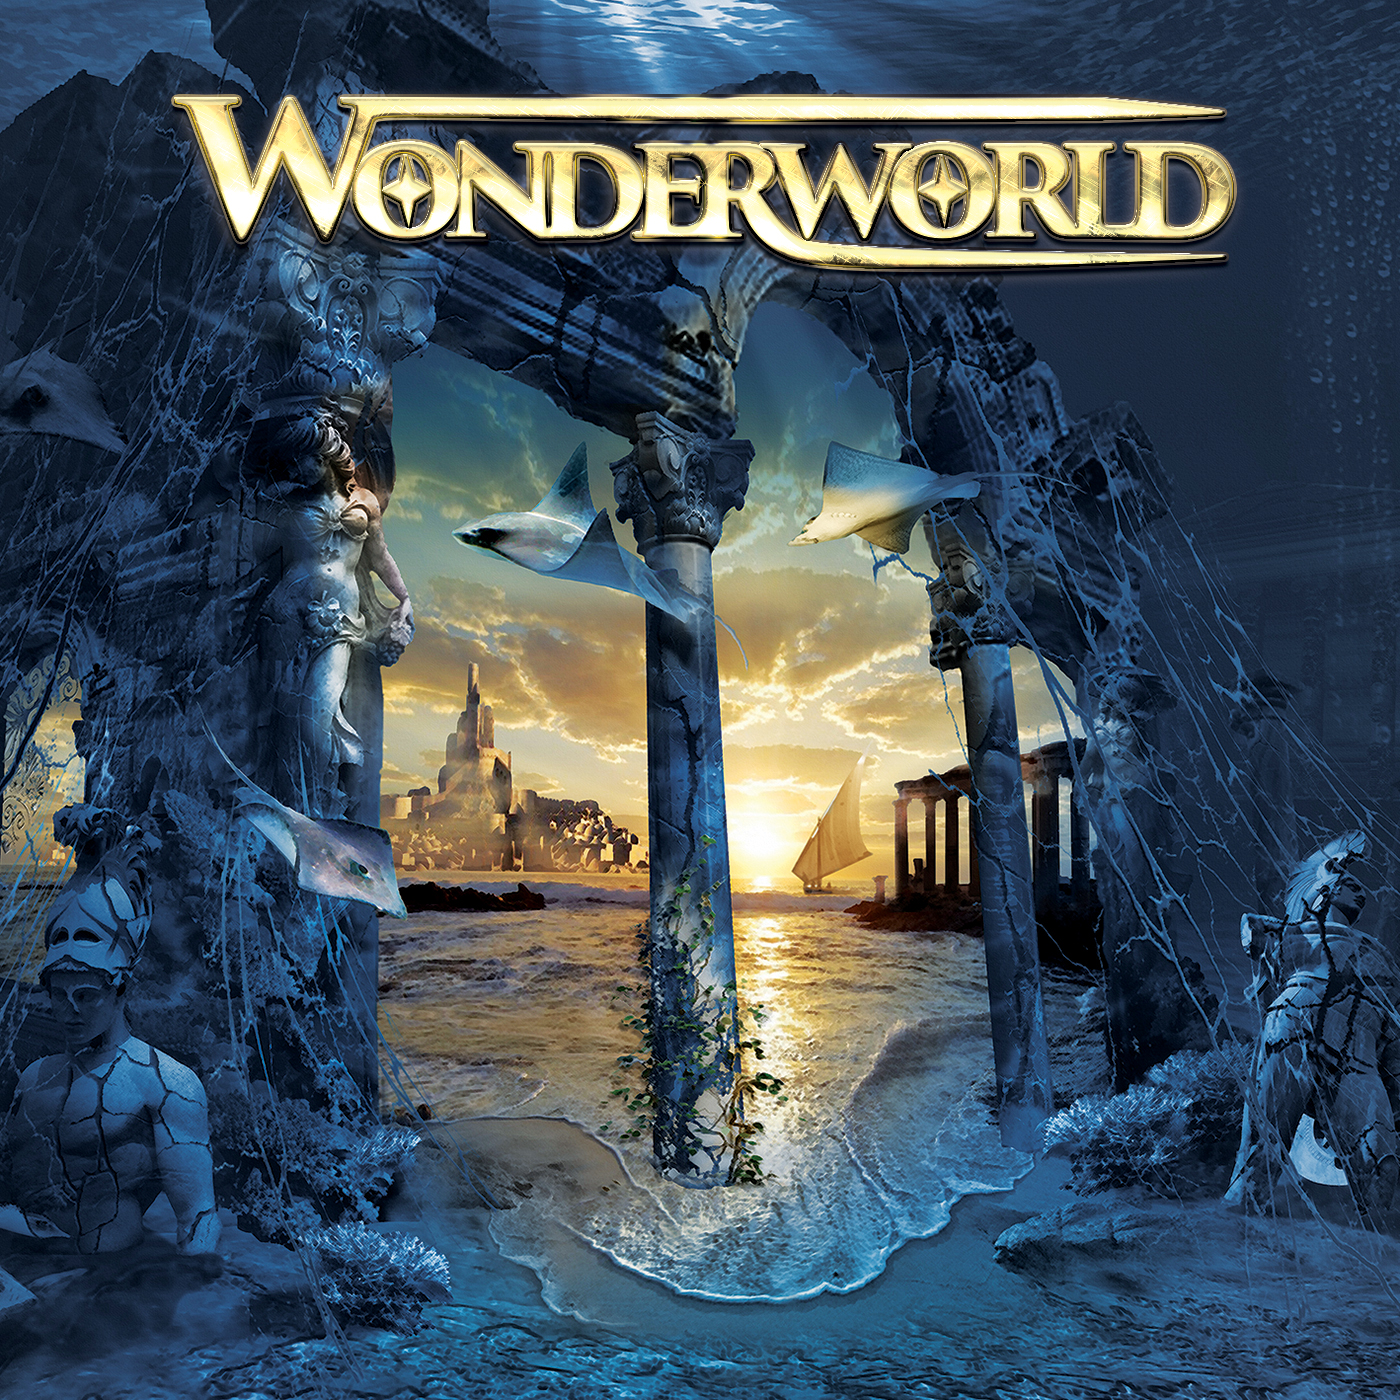 Wonderworld - released October 2014.